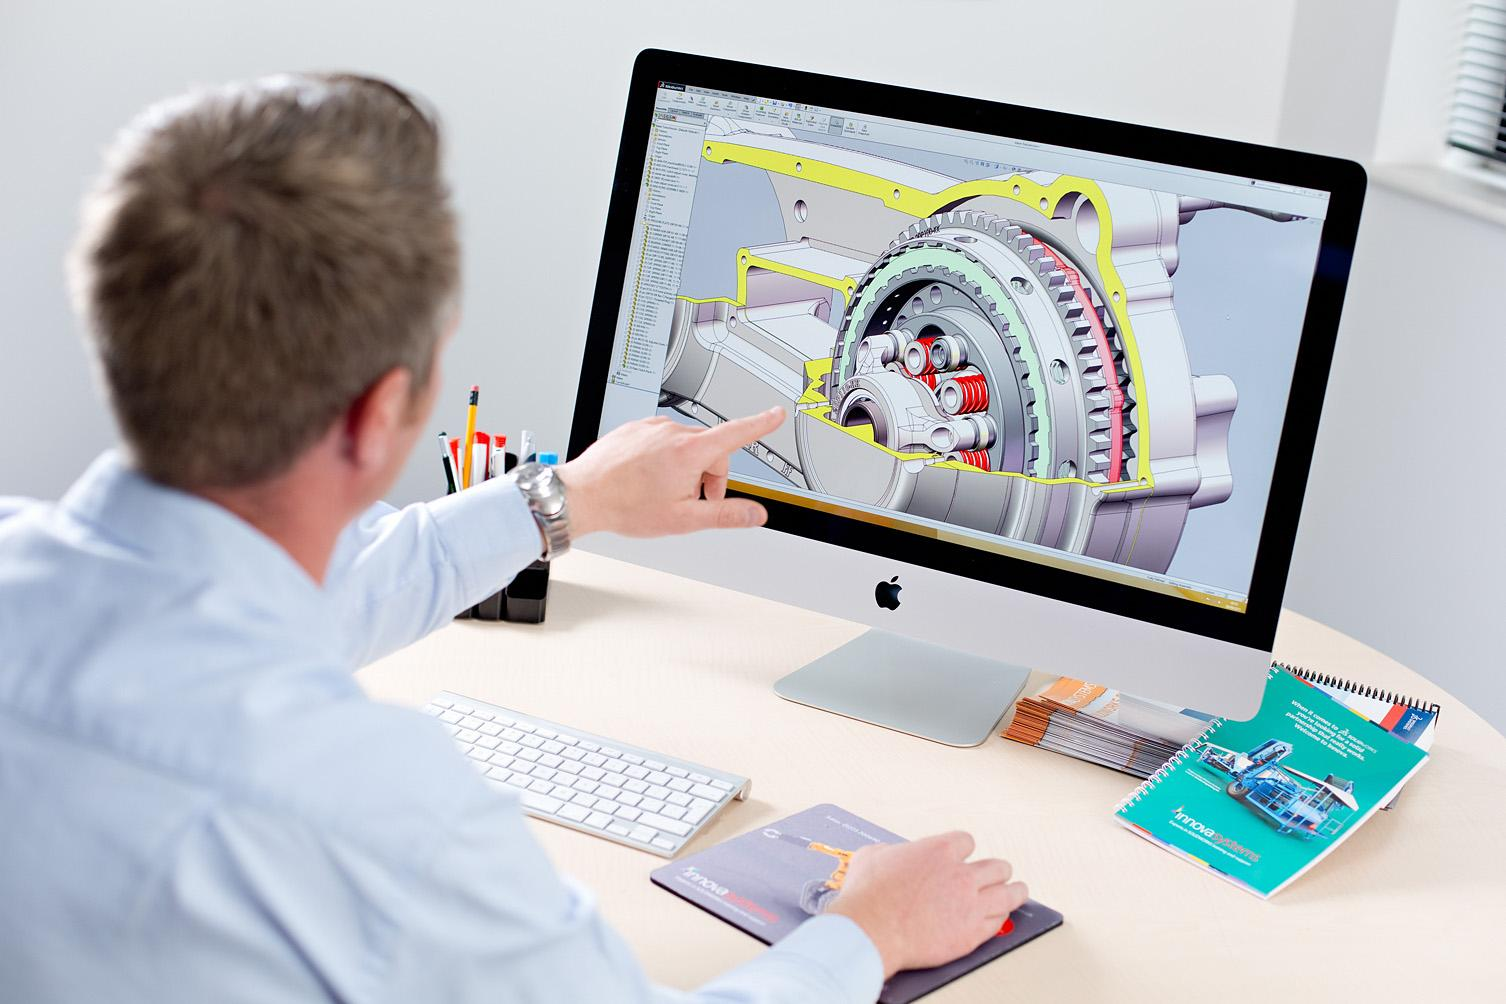 Solidworks 2016 Make 2d Sketches And Turn Them To 3d